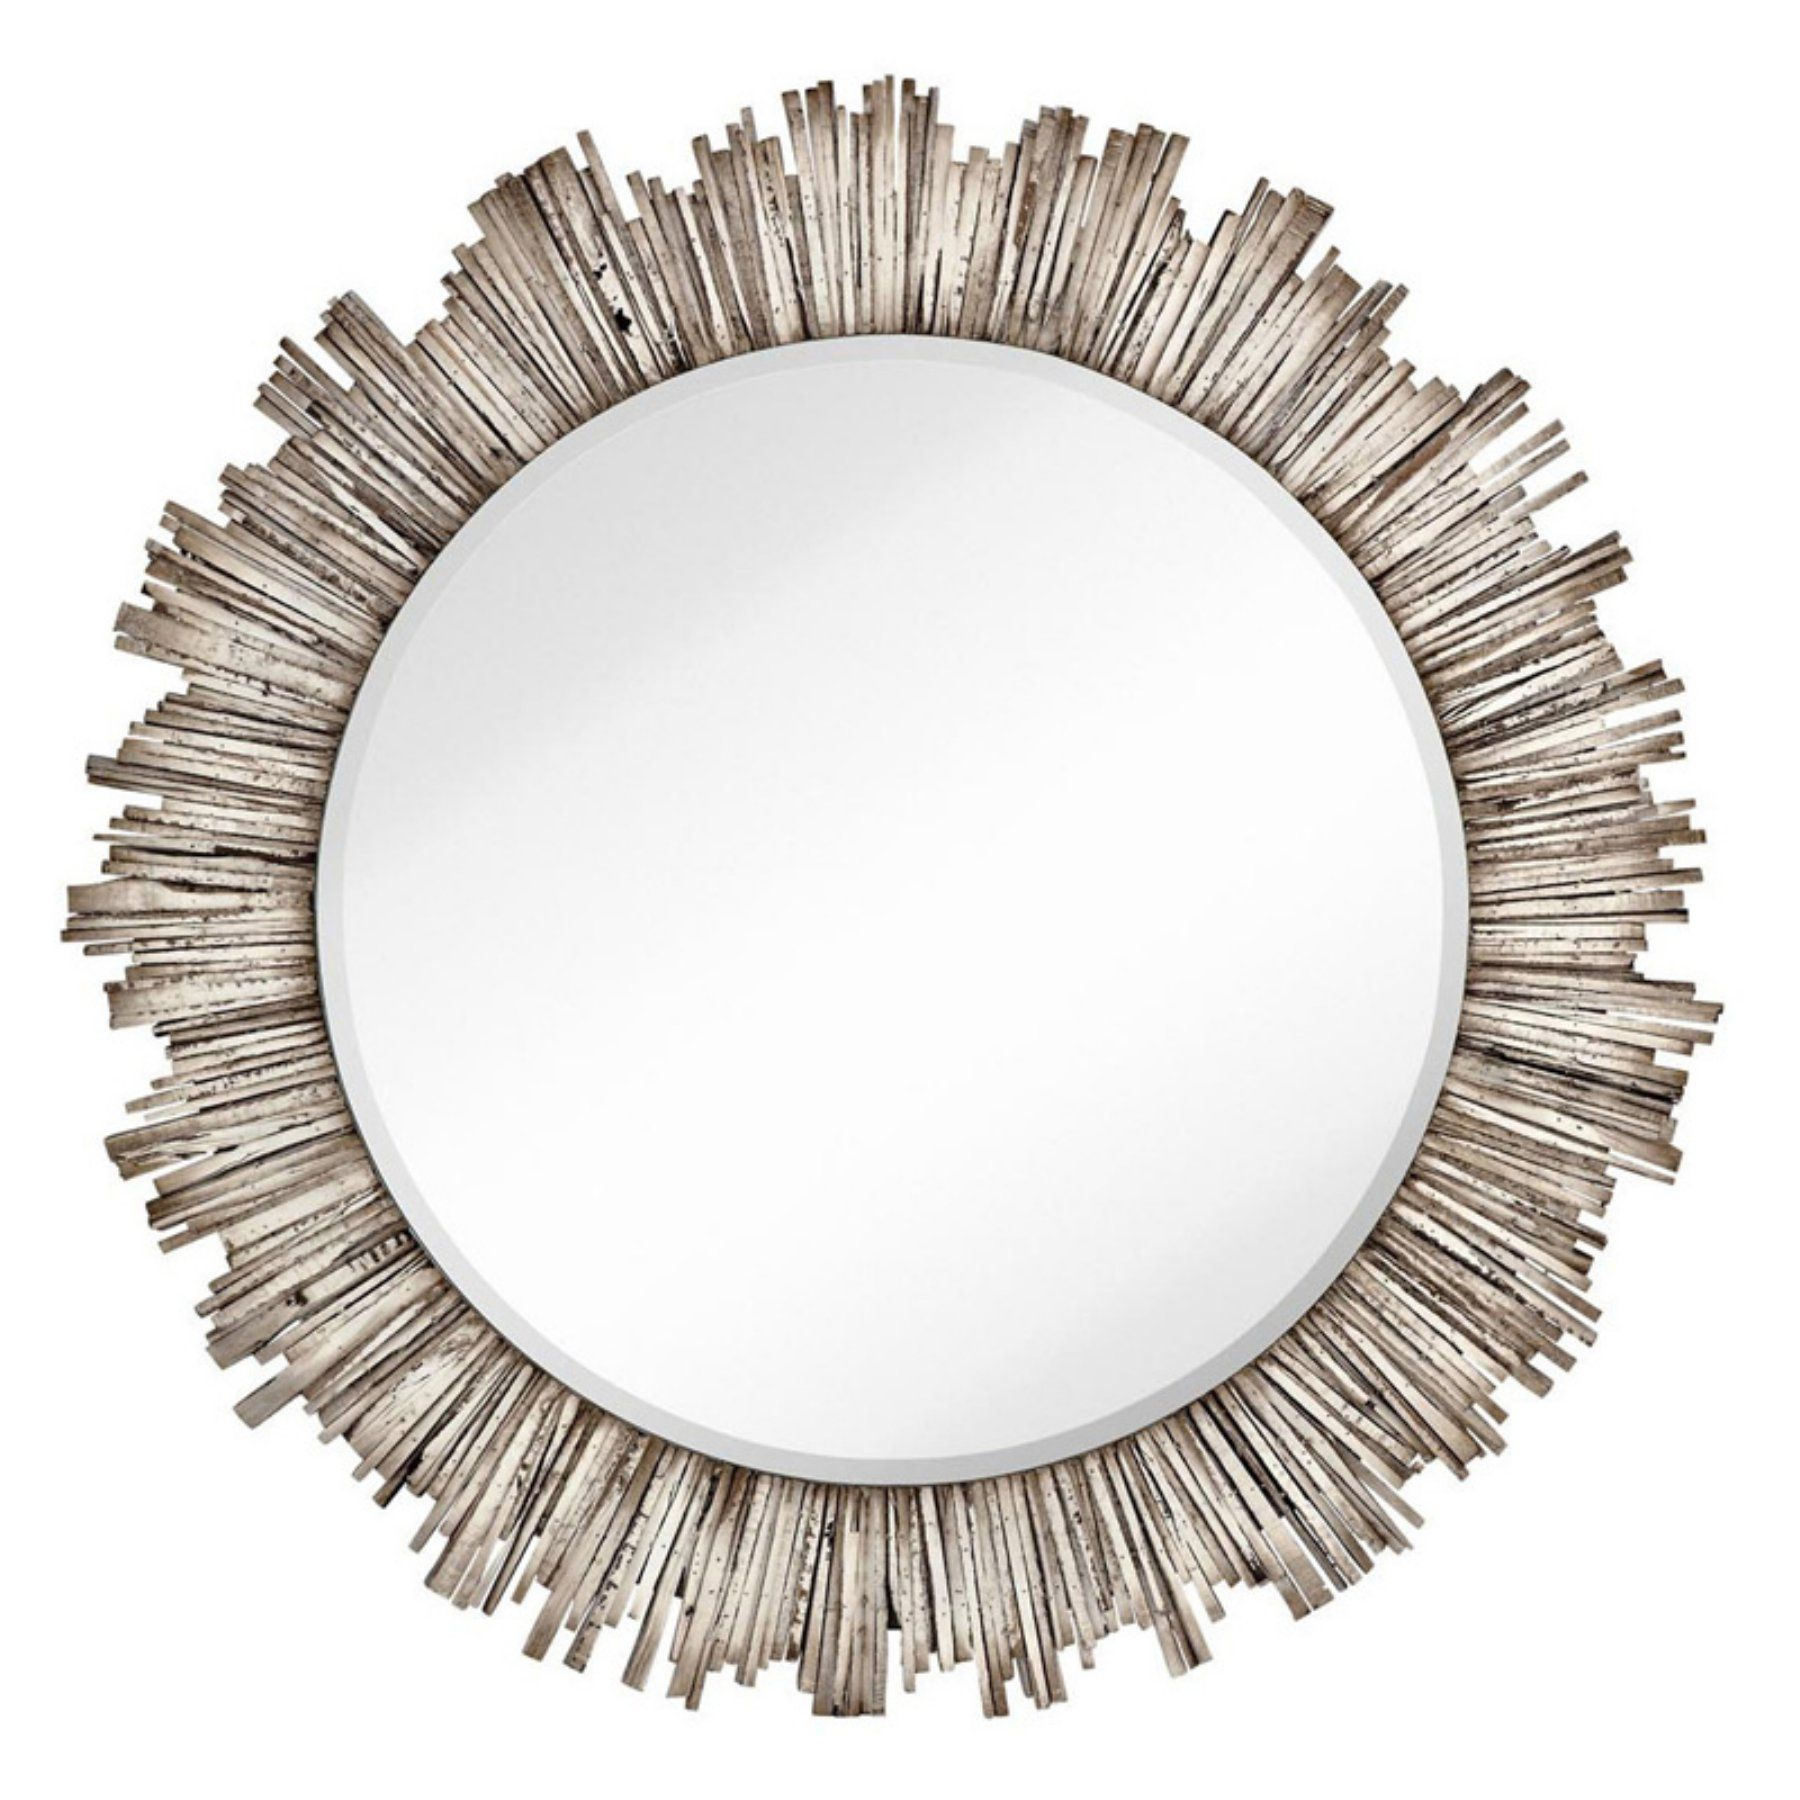 Majestic Large Round Beveled Accent Wall Mirror – 2333 B With Round Eclectic Accent Mirrors (Image 8 of 20)